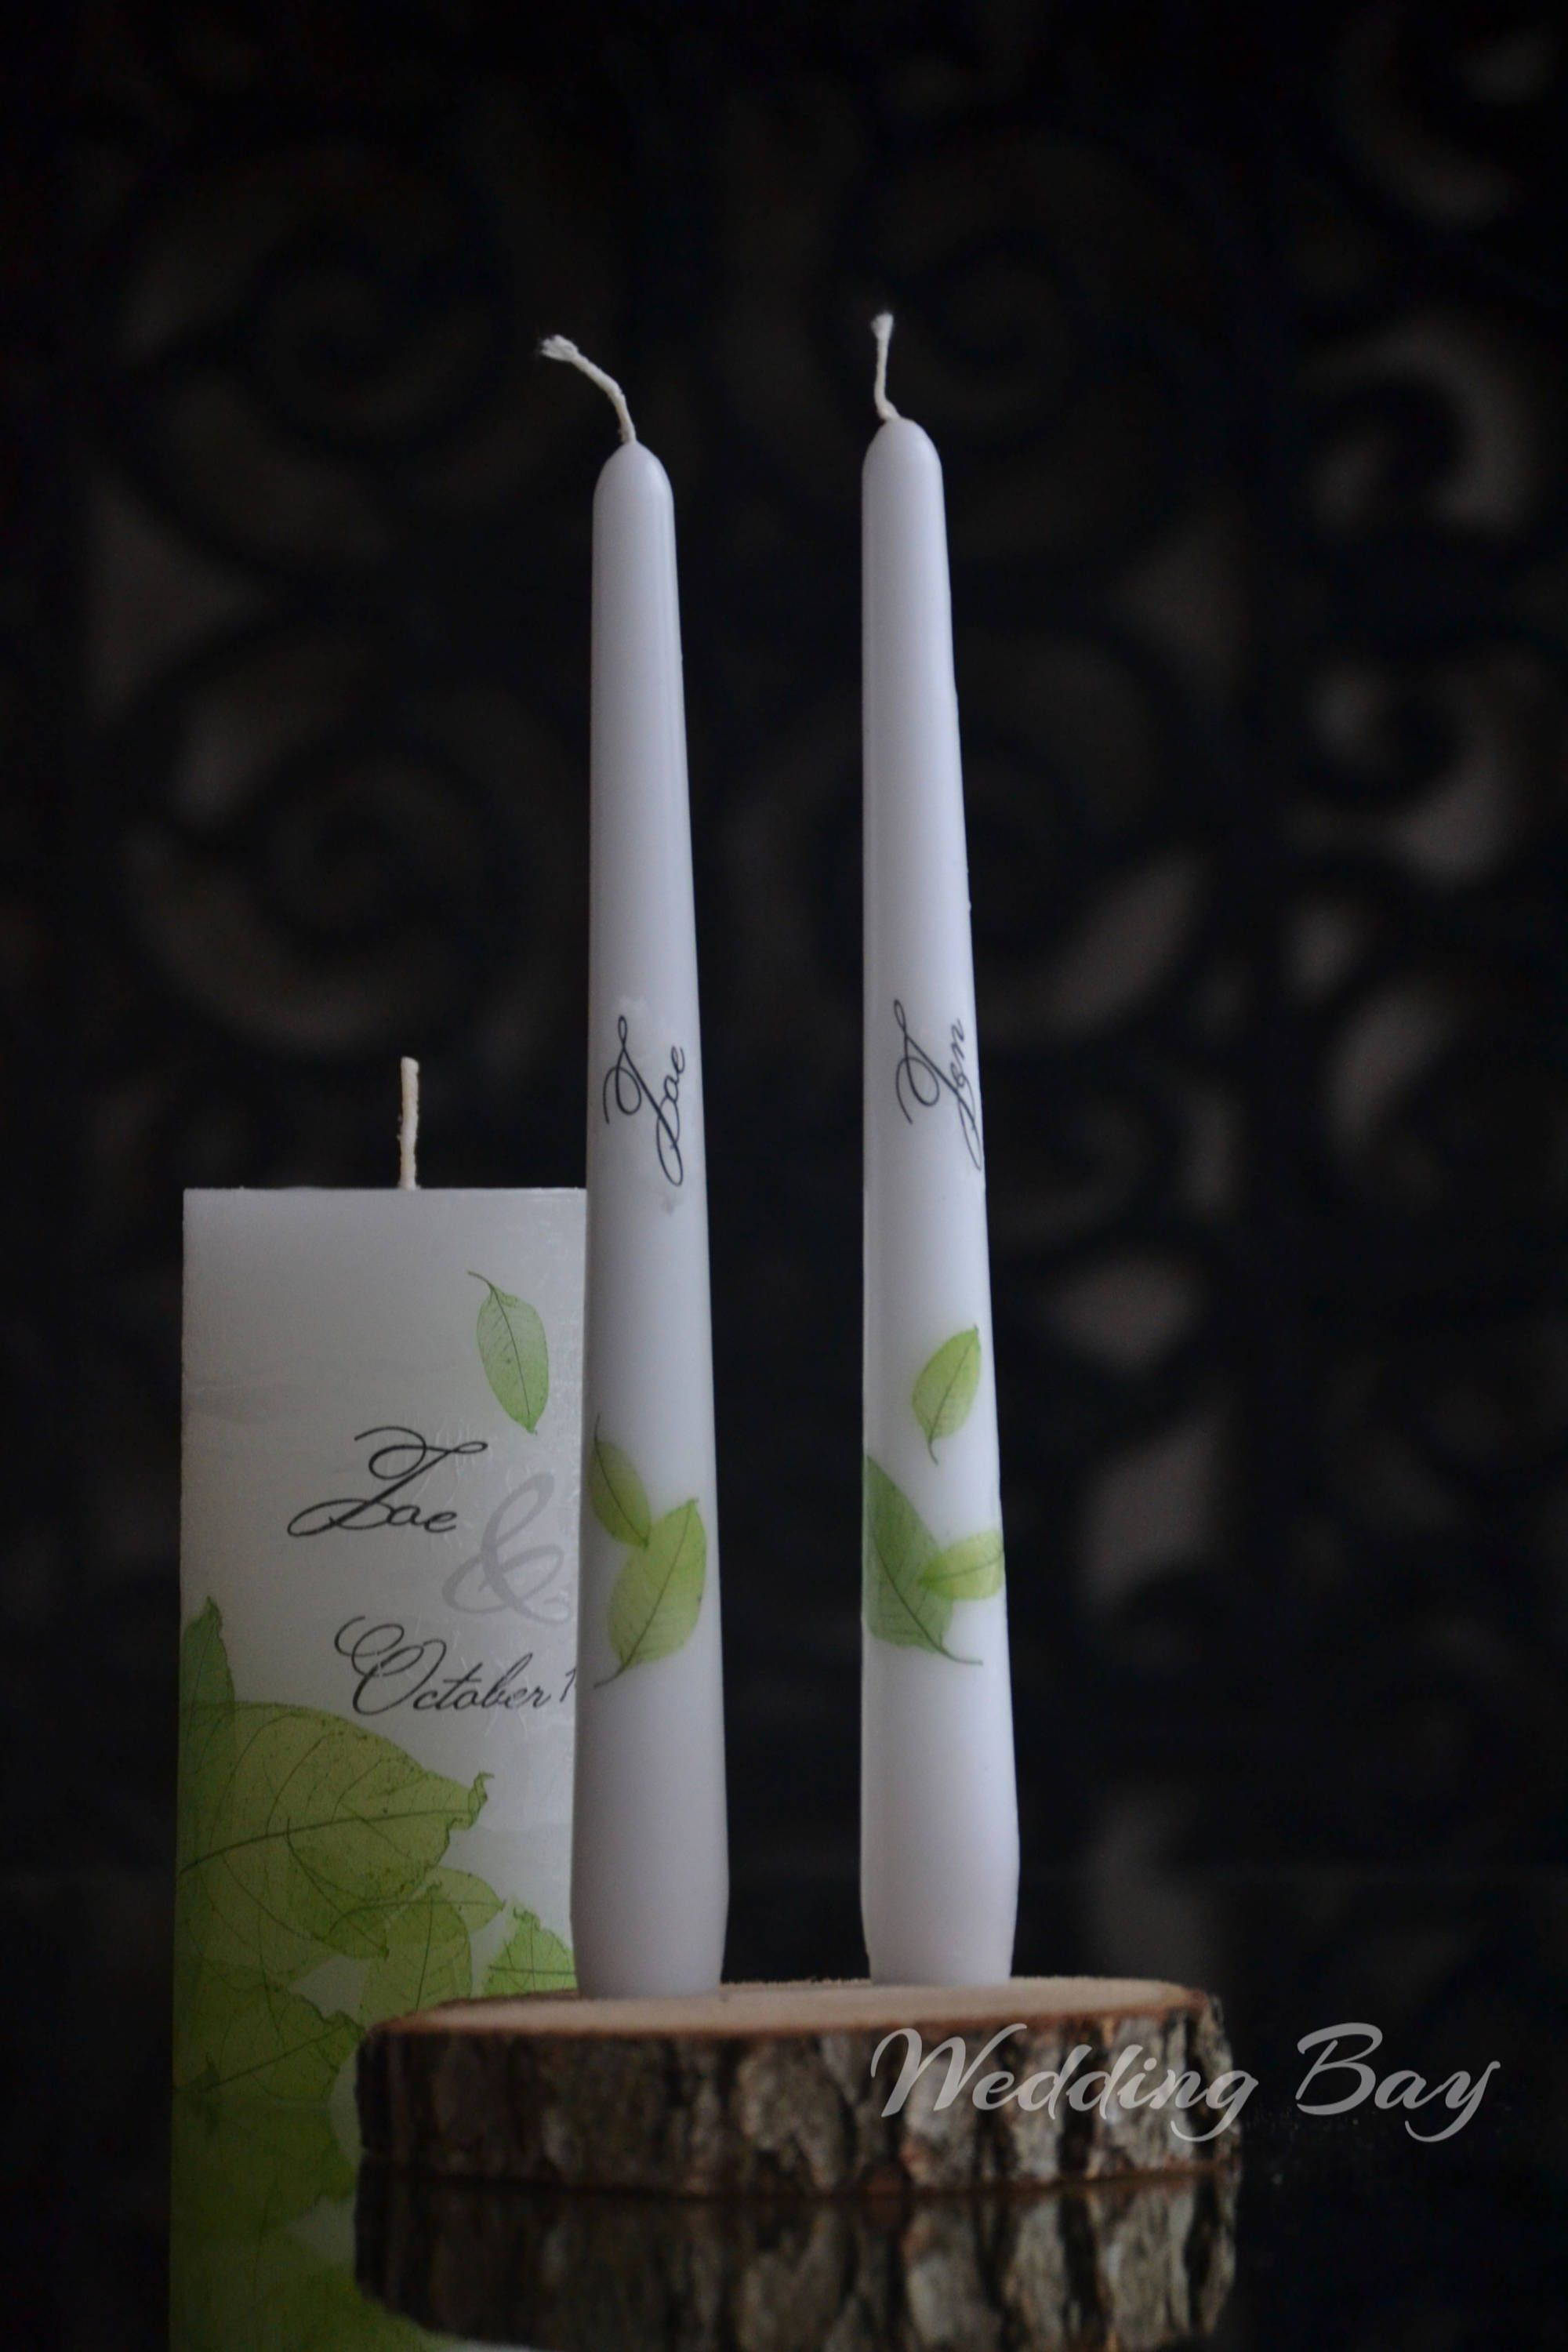 Wedding Candle Set Personalized Unity Custom Candles With Leafs